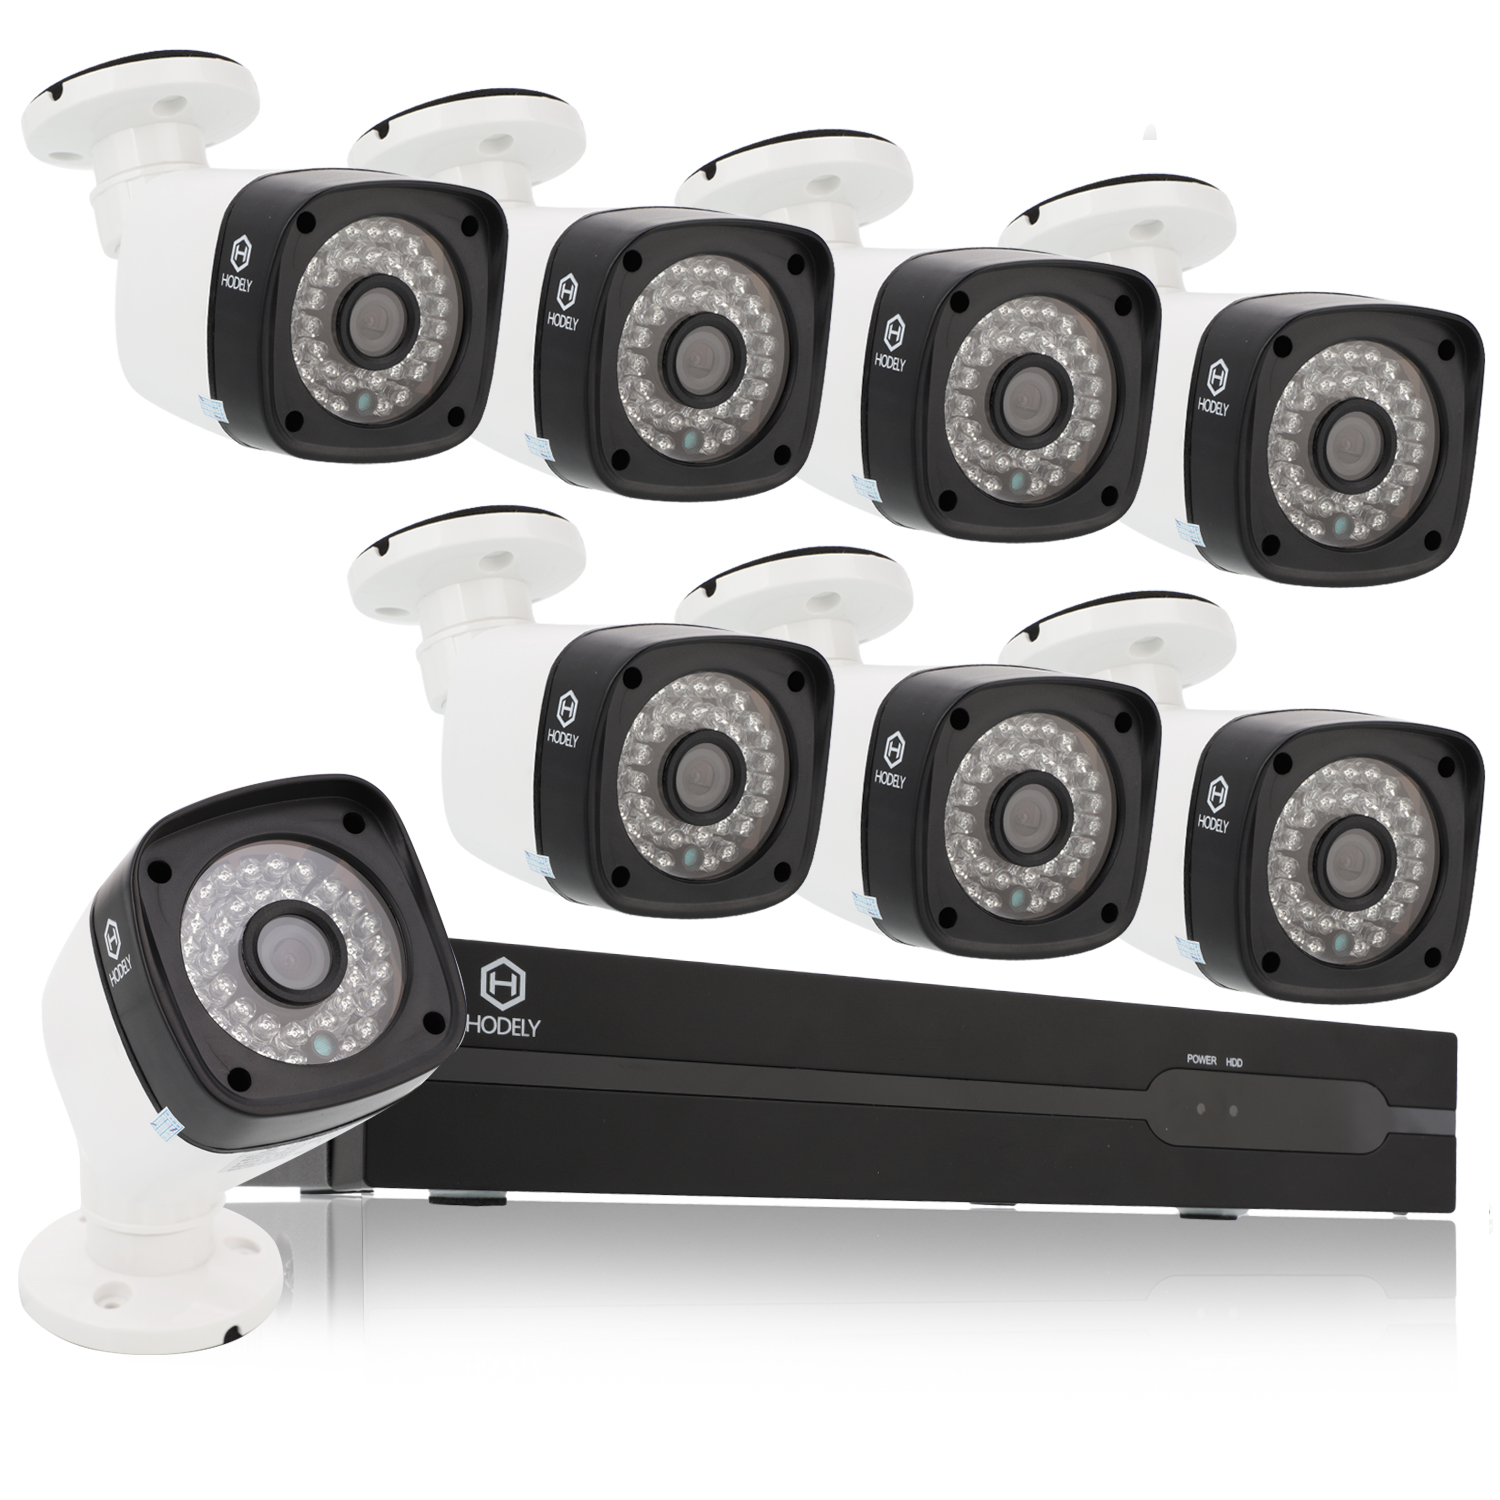 Ktaxon 8CH HDMI NVR 8Pcs Outdoor 720P PoE IR Night Vision Camera Home Security System Without HDD